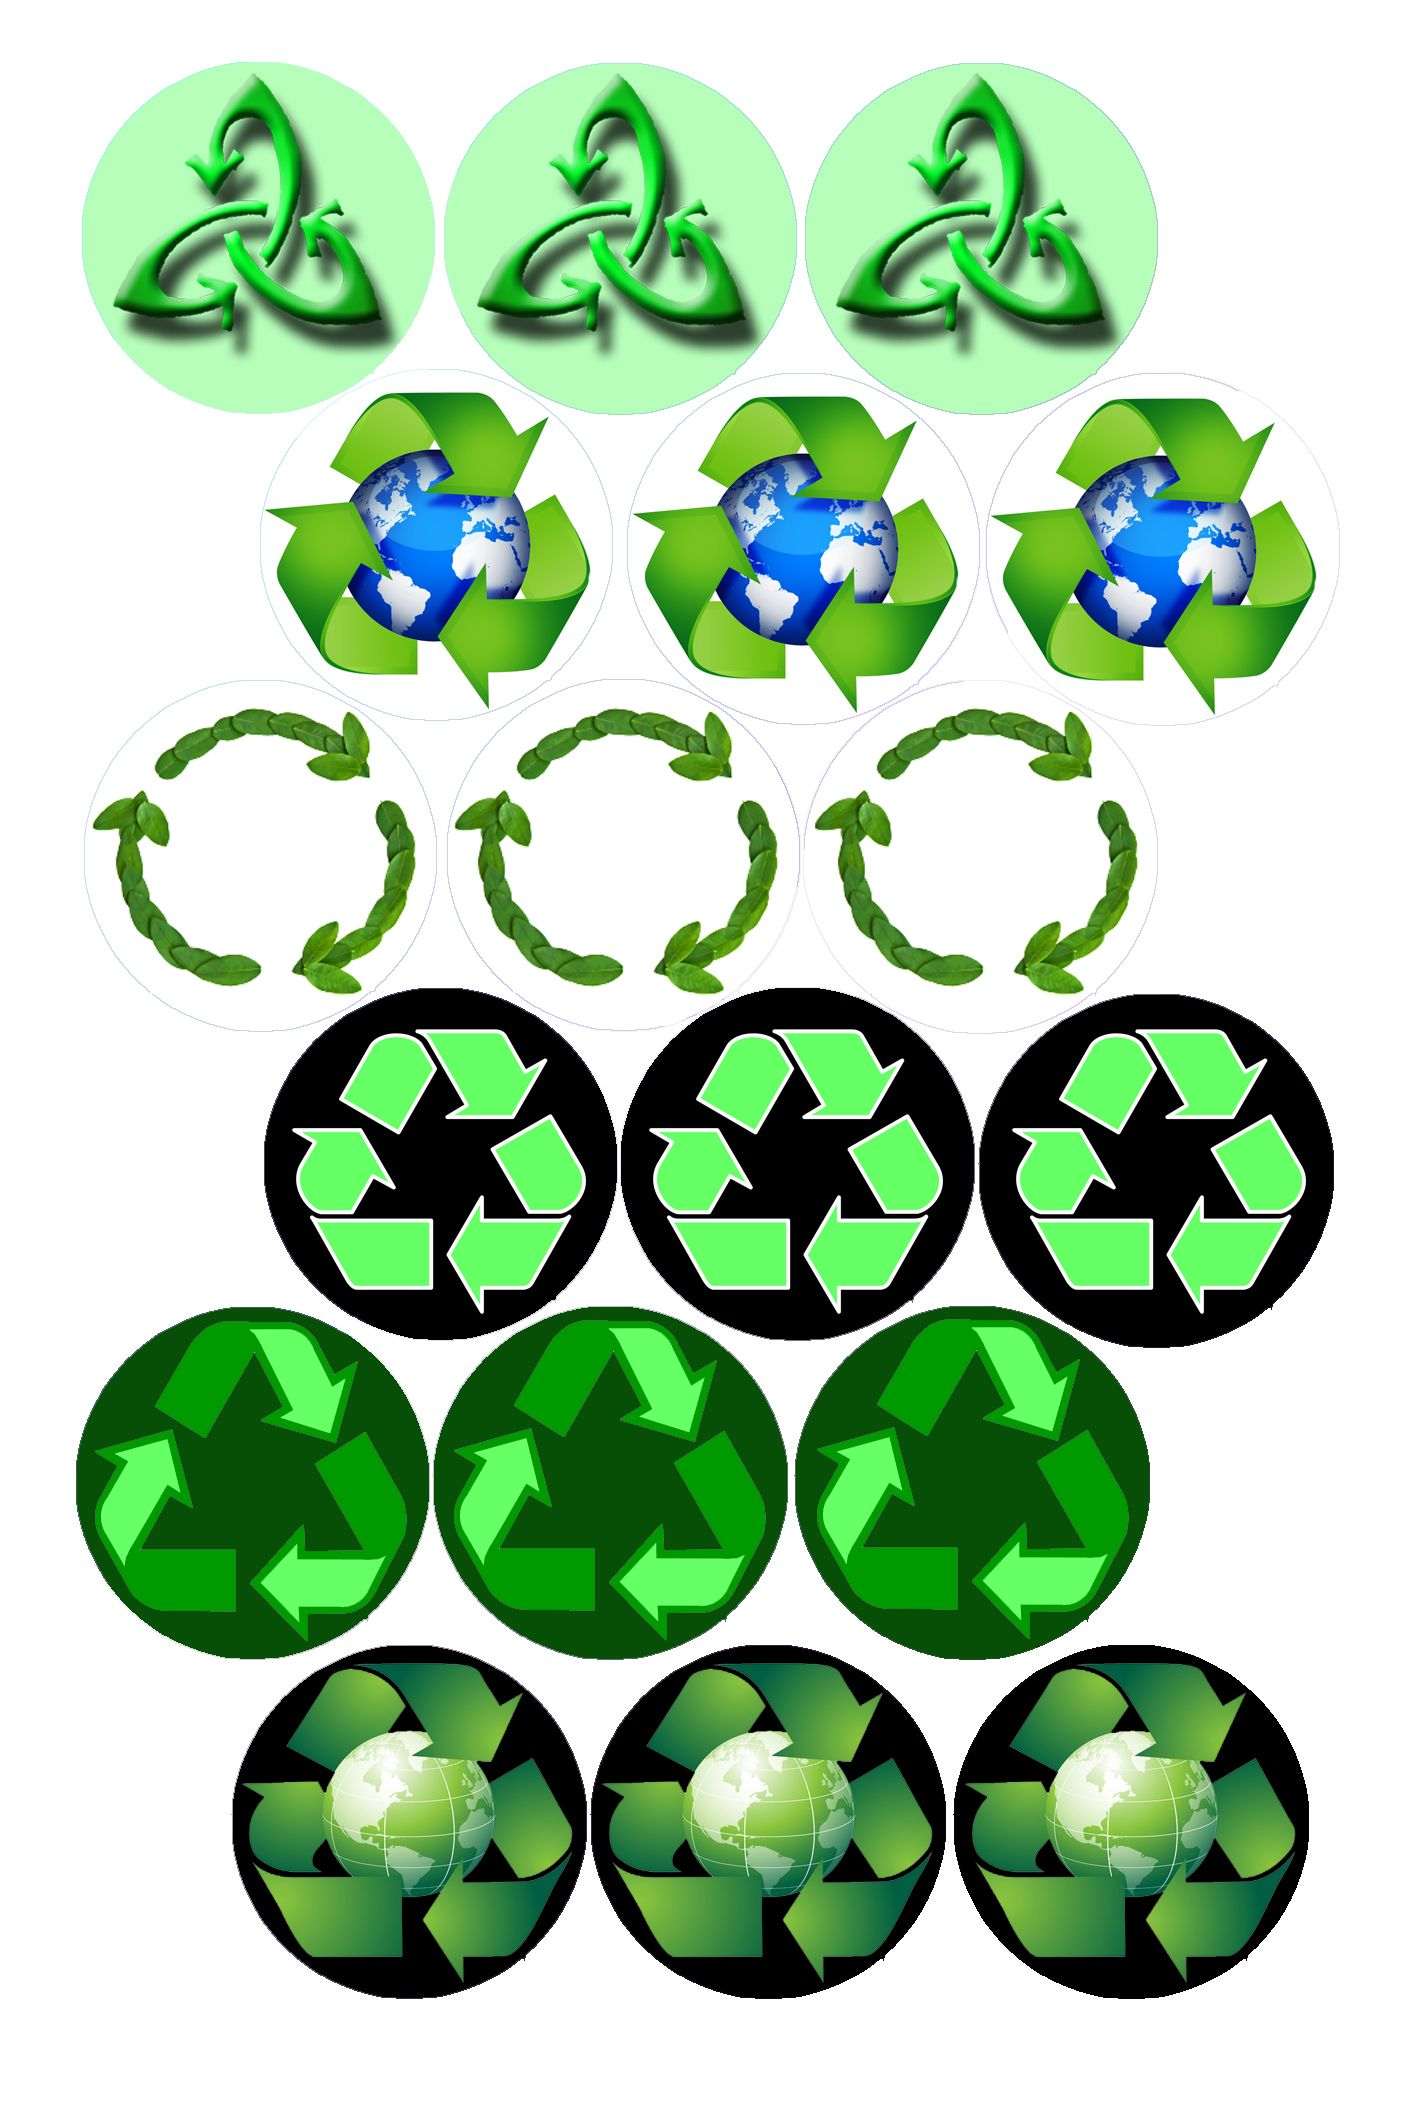 Recycle Symbols Bottle Cap Image Pack Formatted For Printing On 4 X